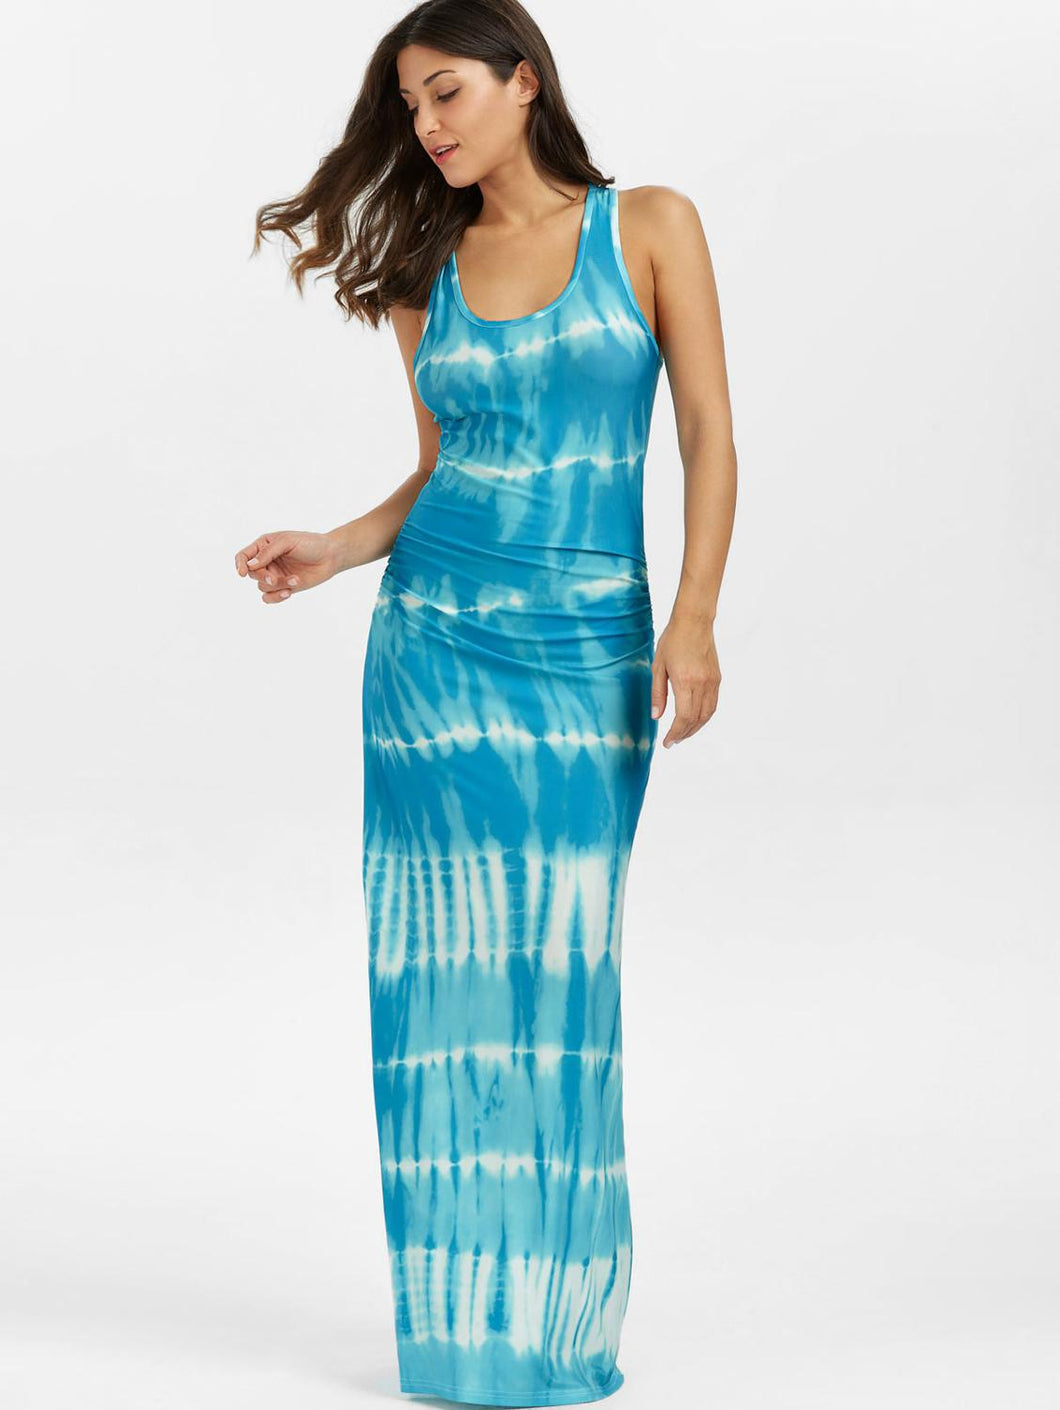 Tie Dye Hot Miami Shades Day Dress